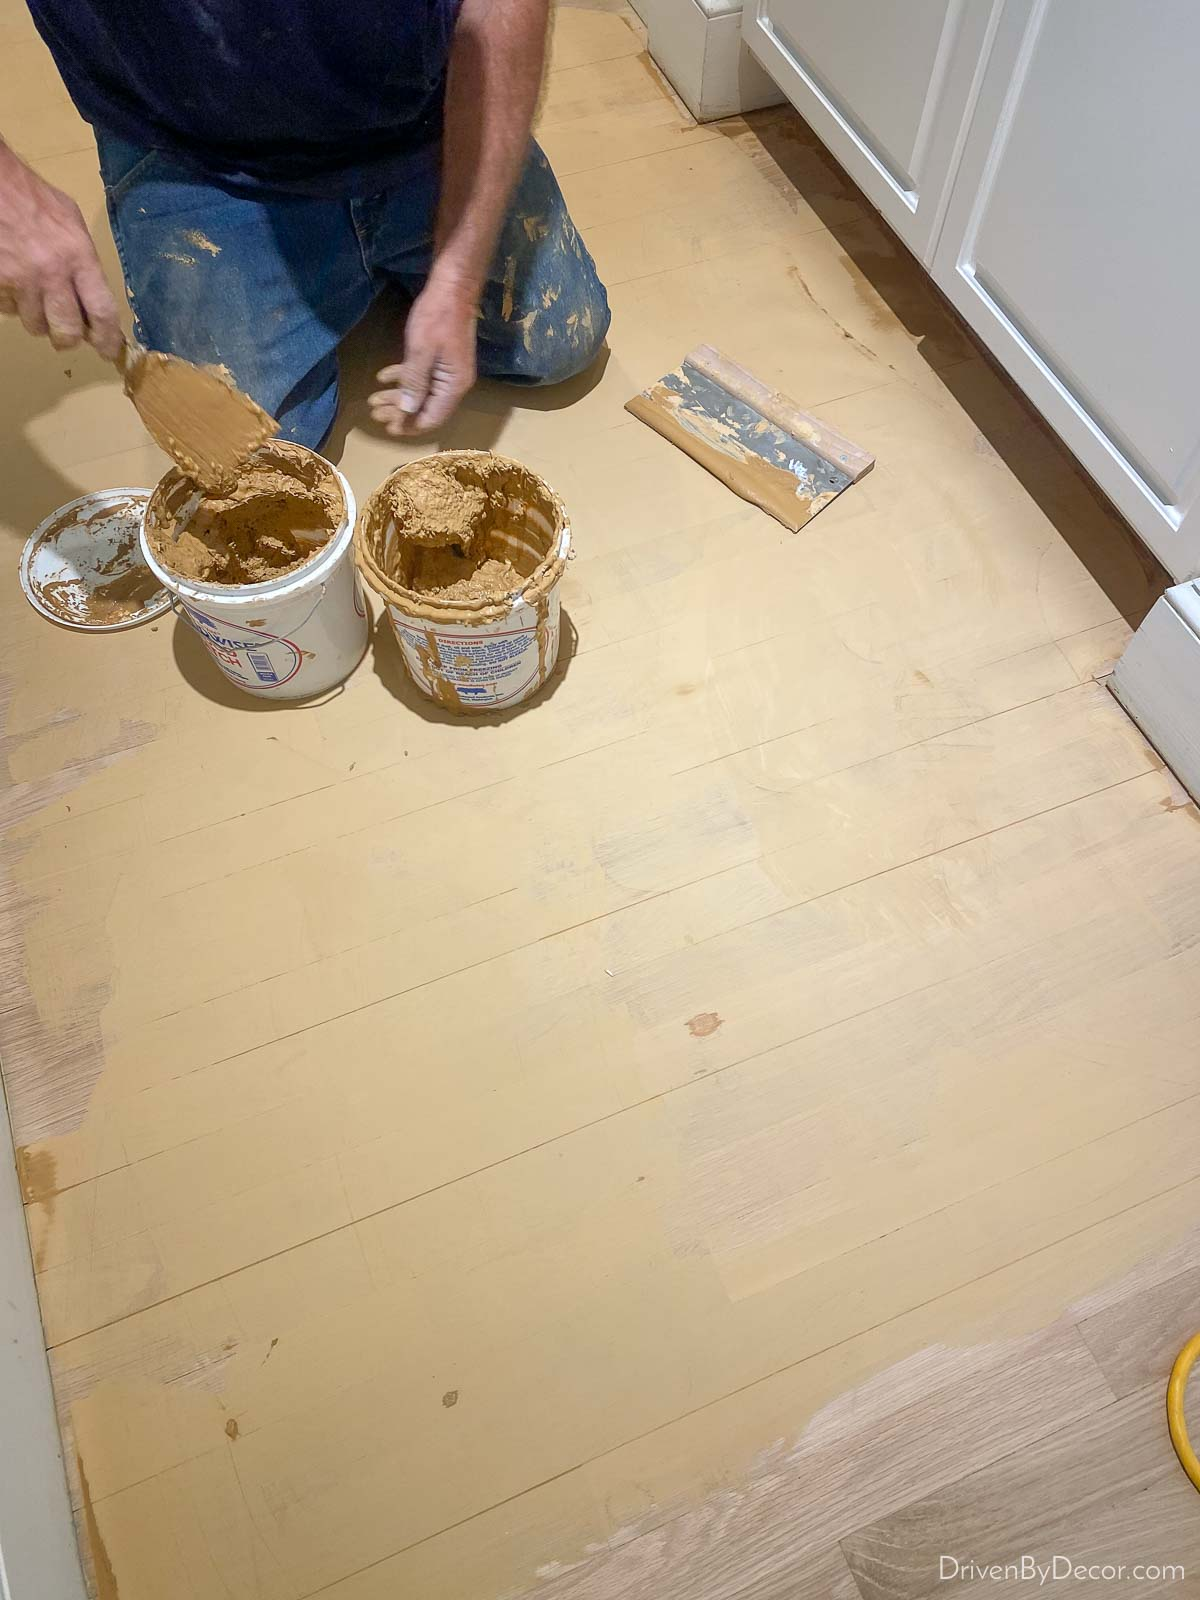 Applying wood filler to patch imperfections in wood floor before refinishing